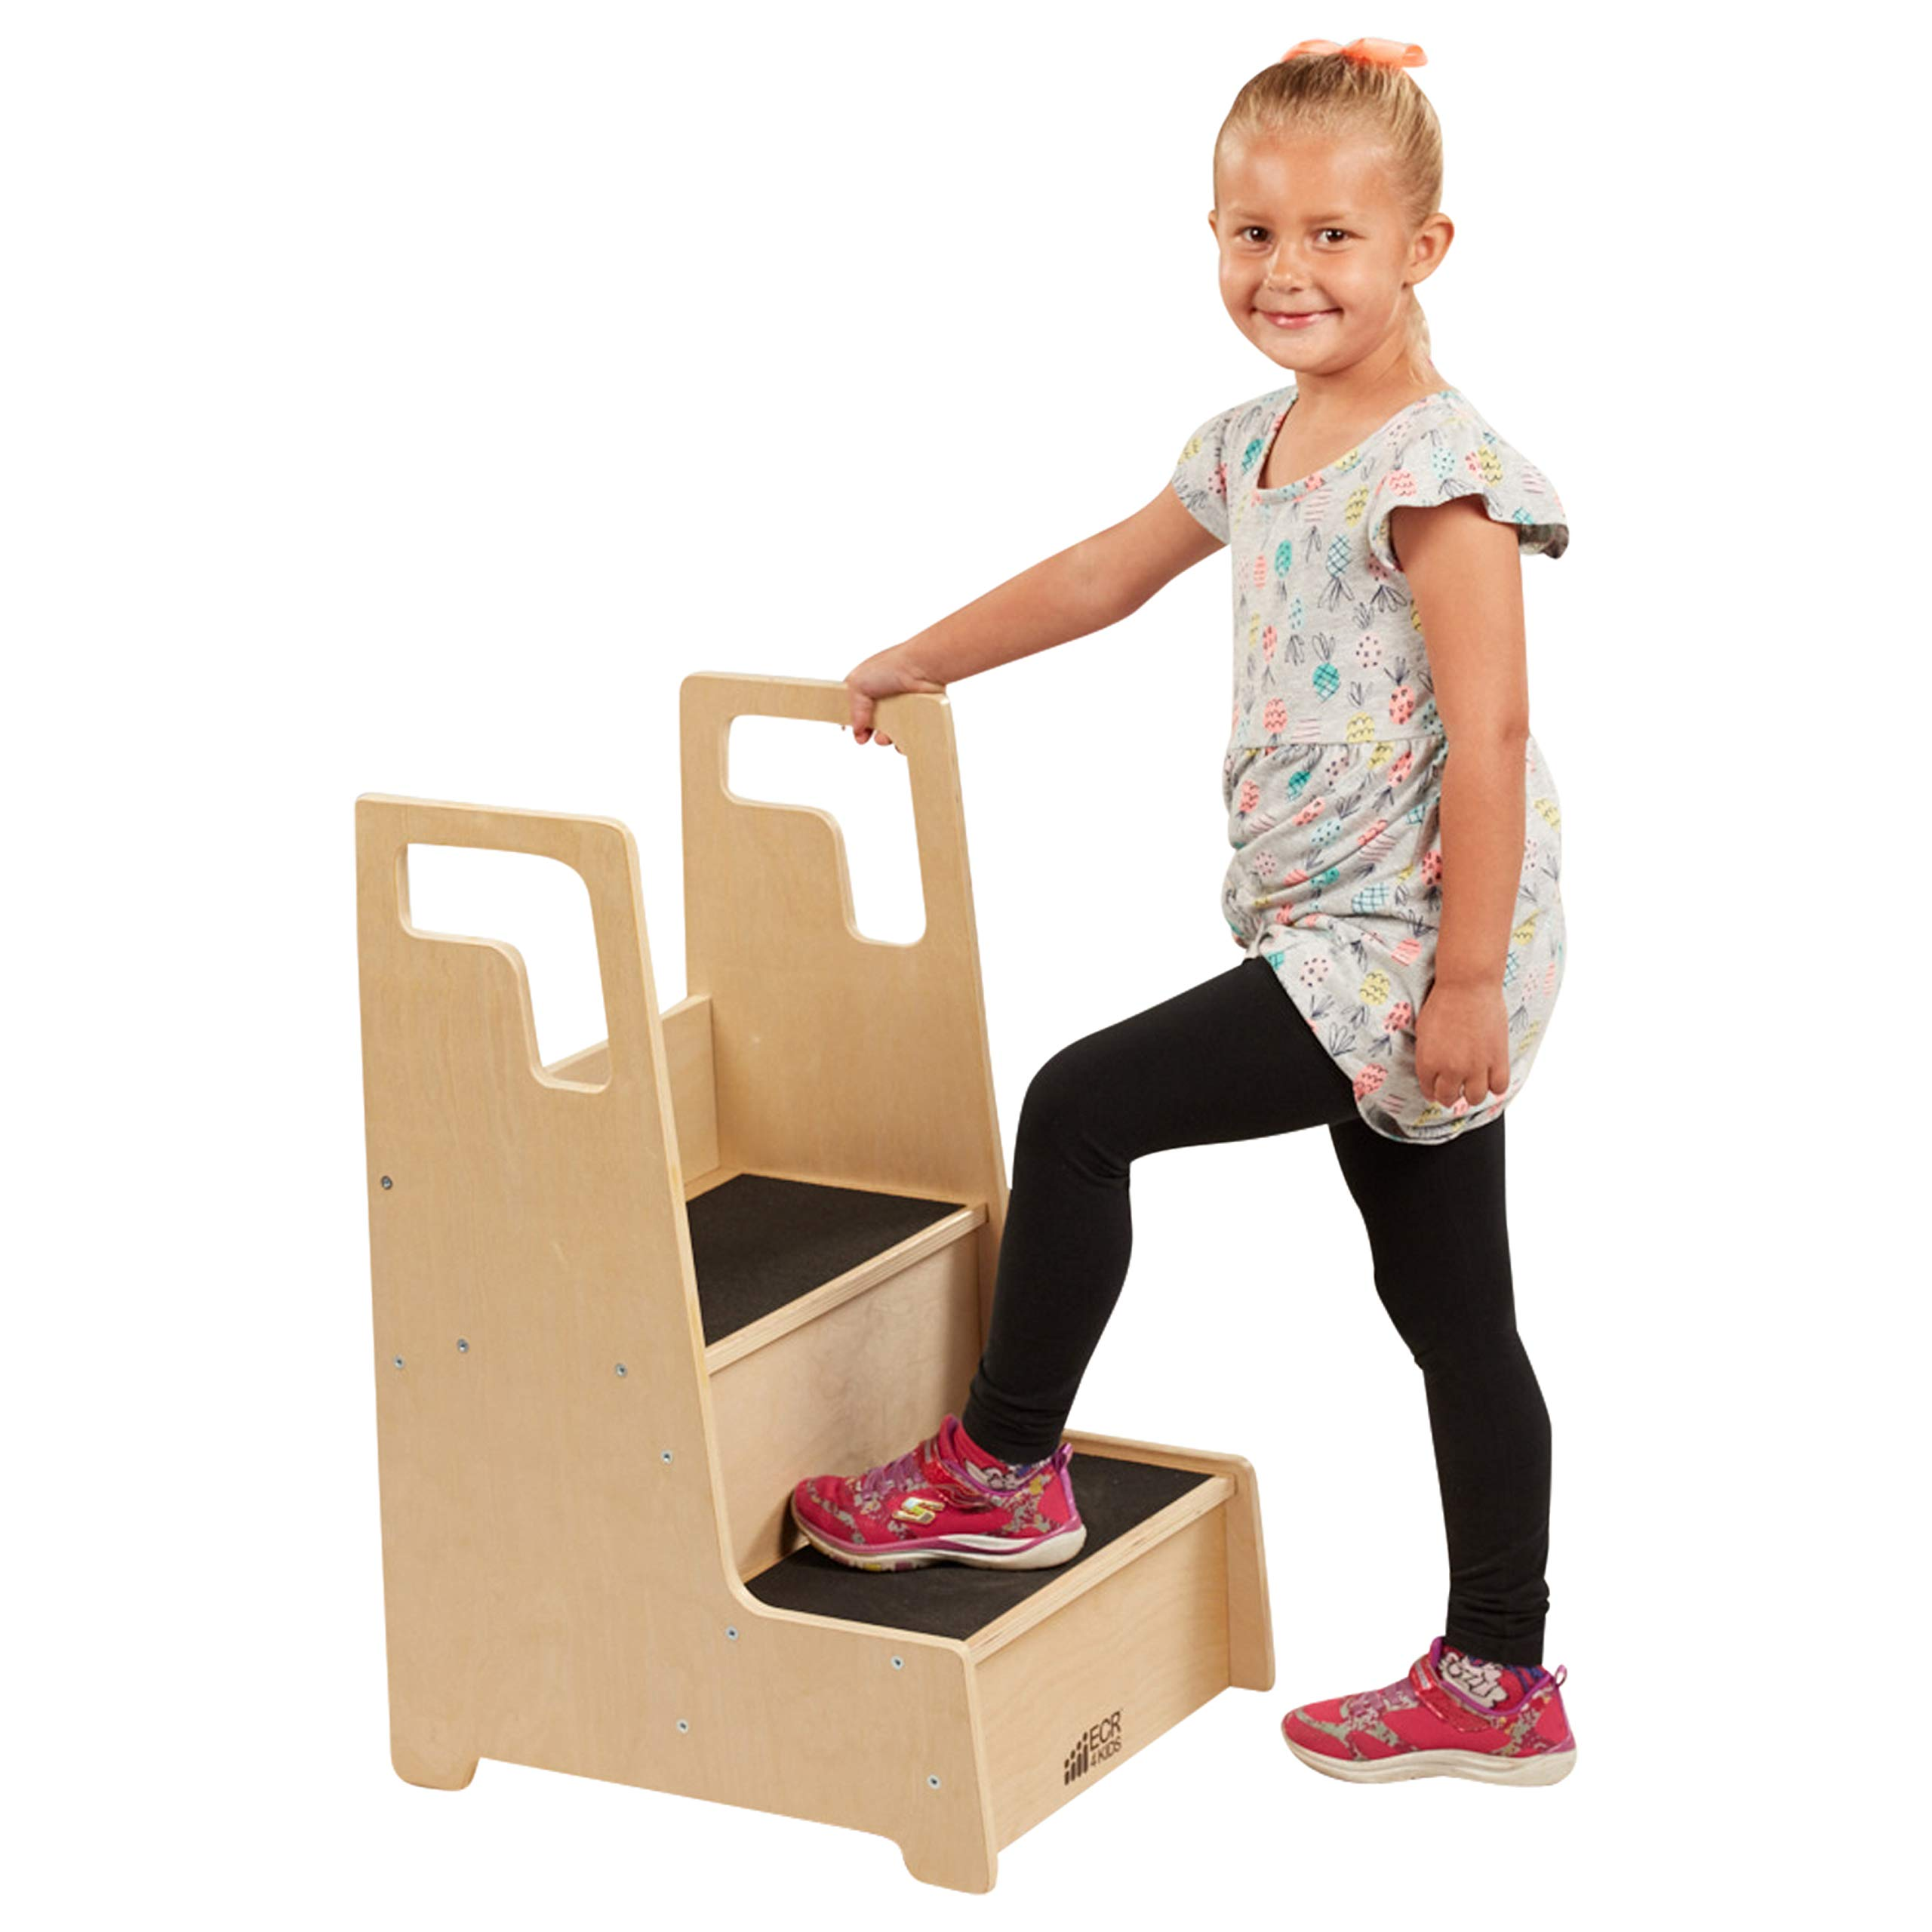 ECR4Kids Reach-Up Step Stool with Support Handles and Non-Slip, Two Step Counter Height Hardwood Stepping Stool for Kids and Toddlers, Natural Finish